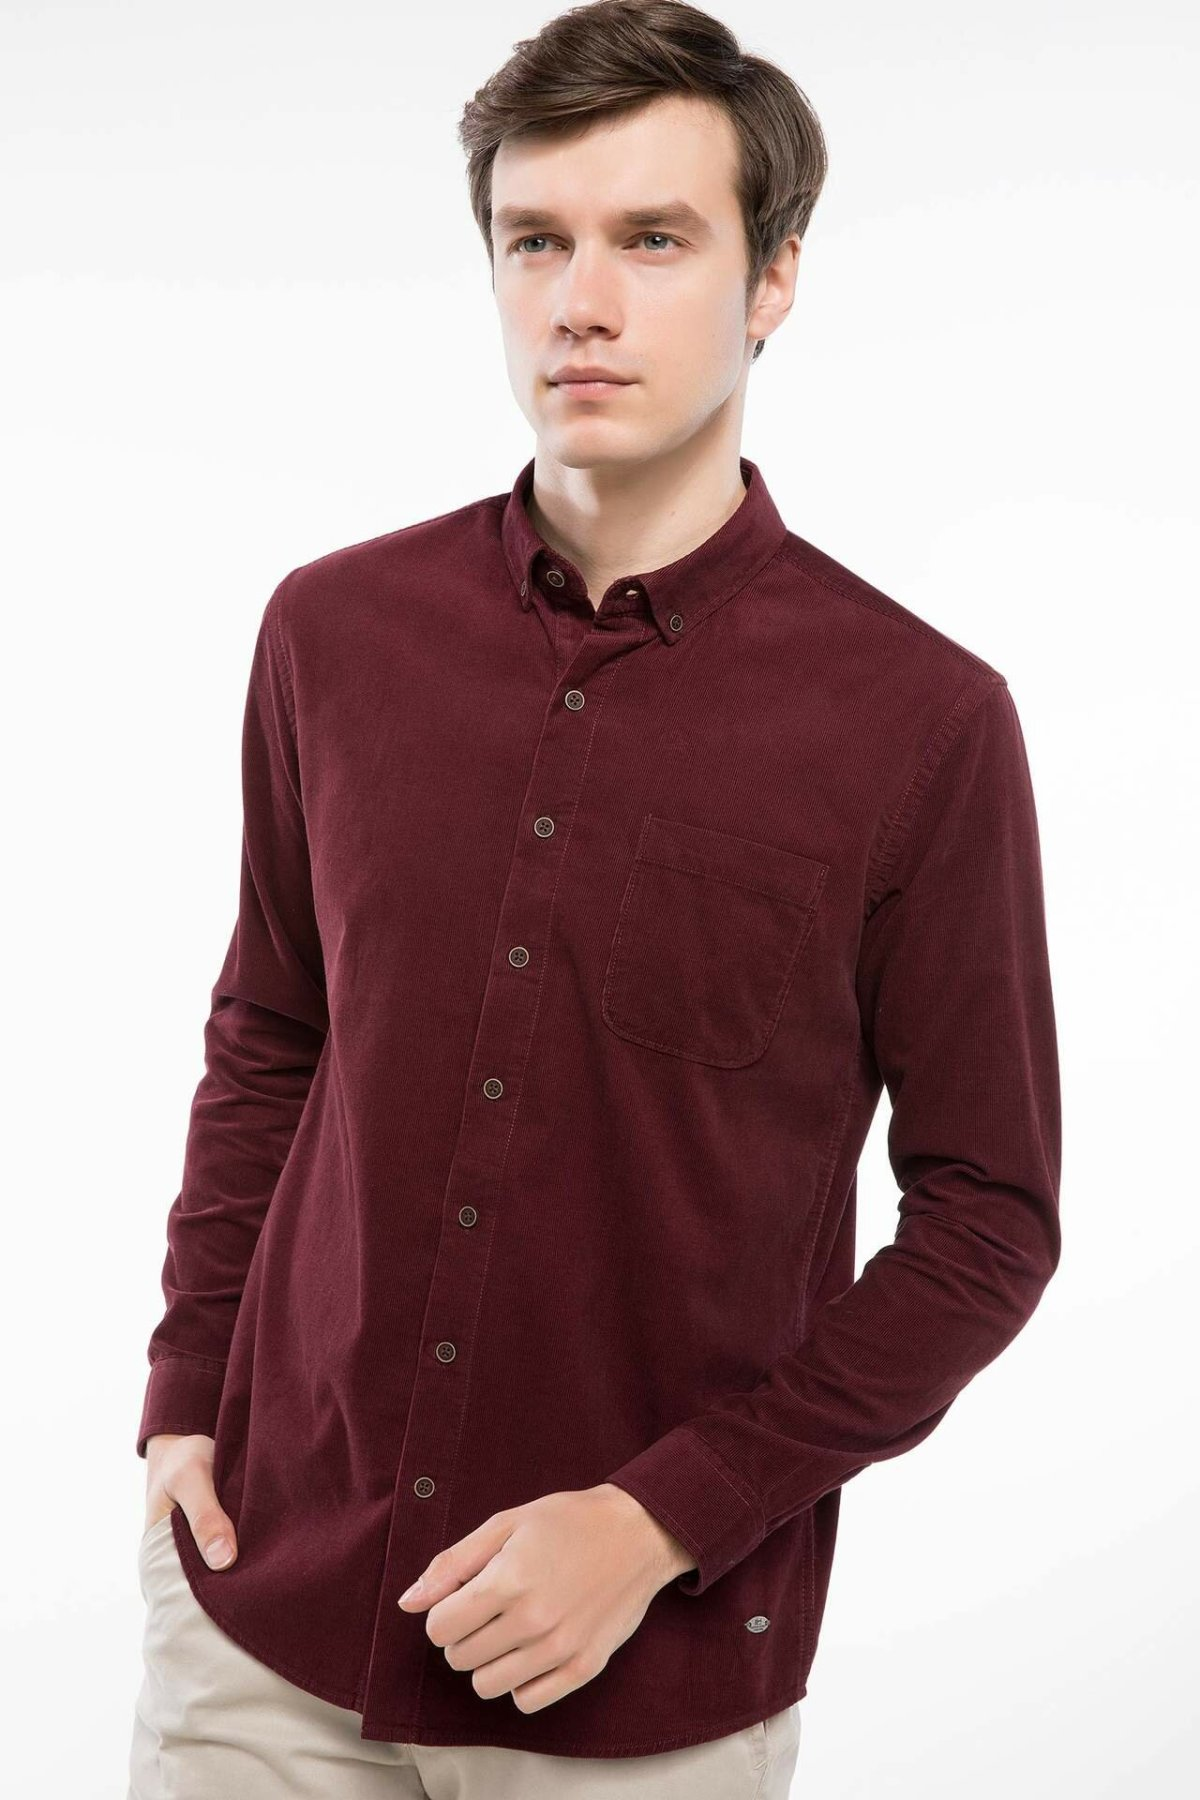 DeFacto Men Autumn Solid Color Cotton Shirt All Match Long Sleeve Male Pocket Retro Blouse Shirt-J1153AZ18WN